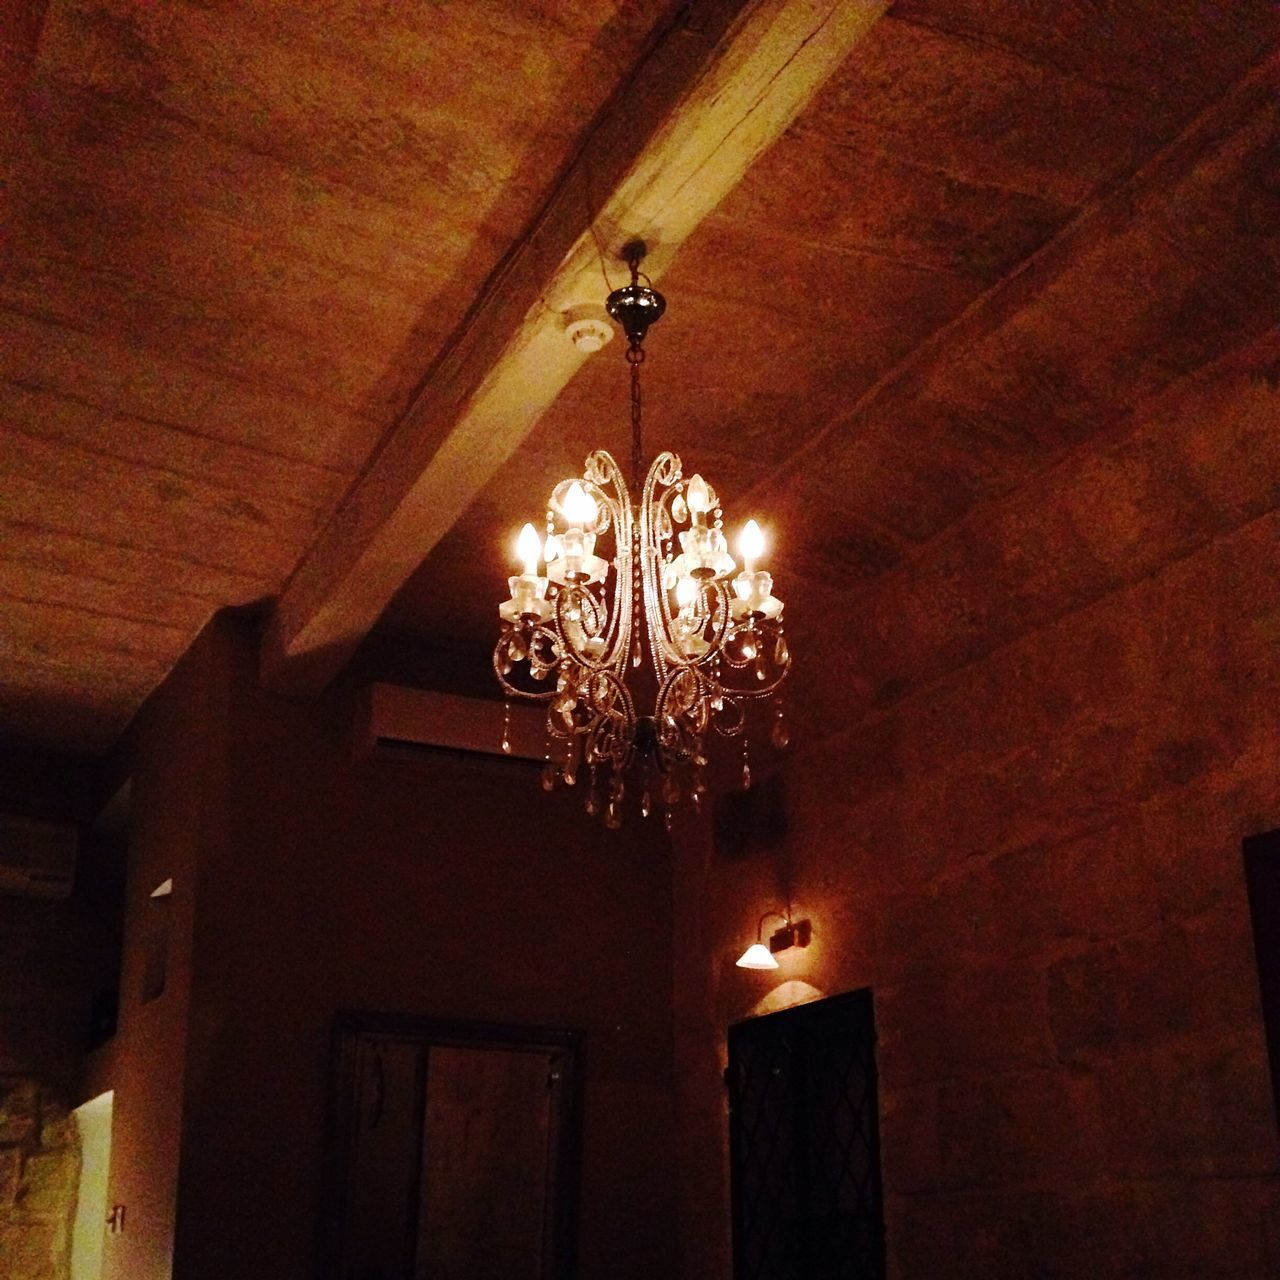 Chandelier Wine Bar Saturday Night Saturday Weekend Old House Lovely Atmosphere Relaxing Date Night Malta